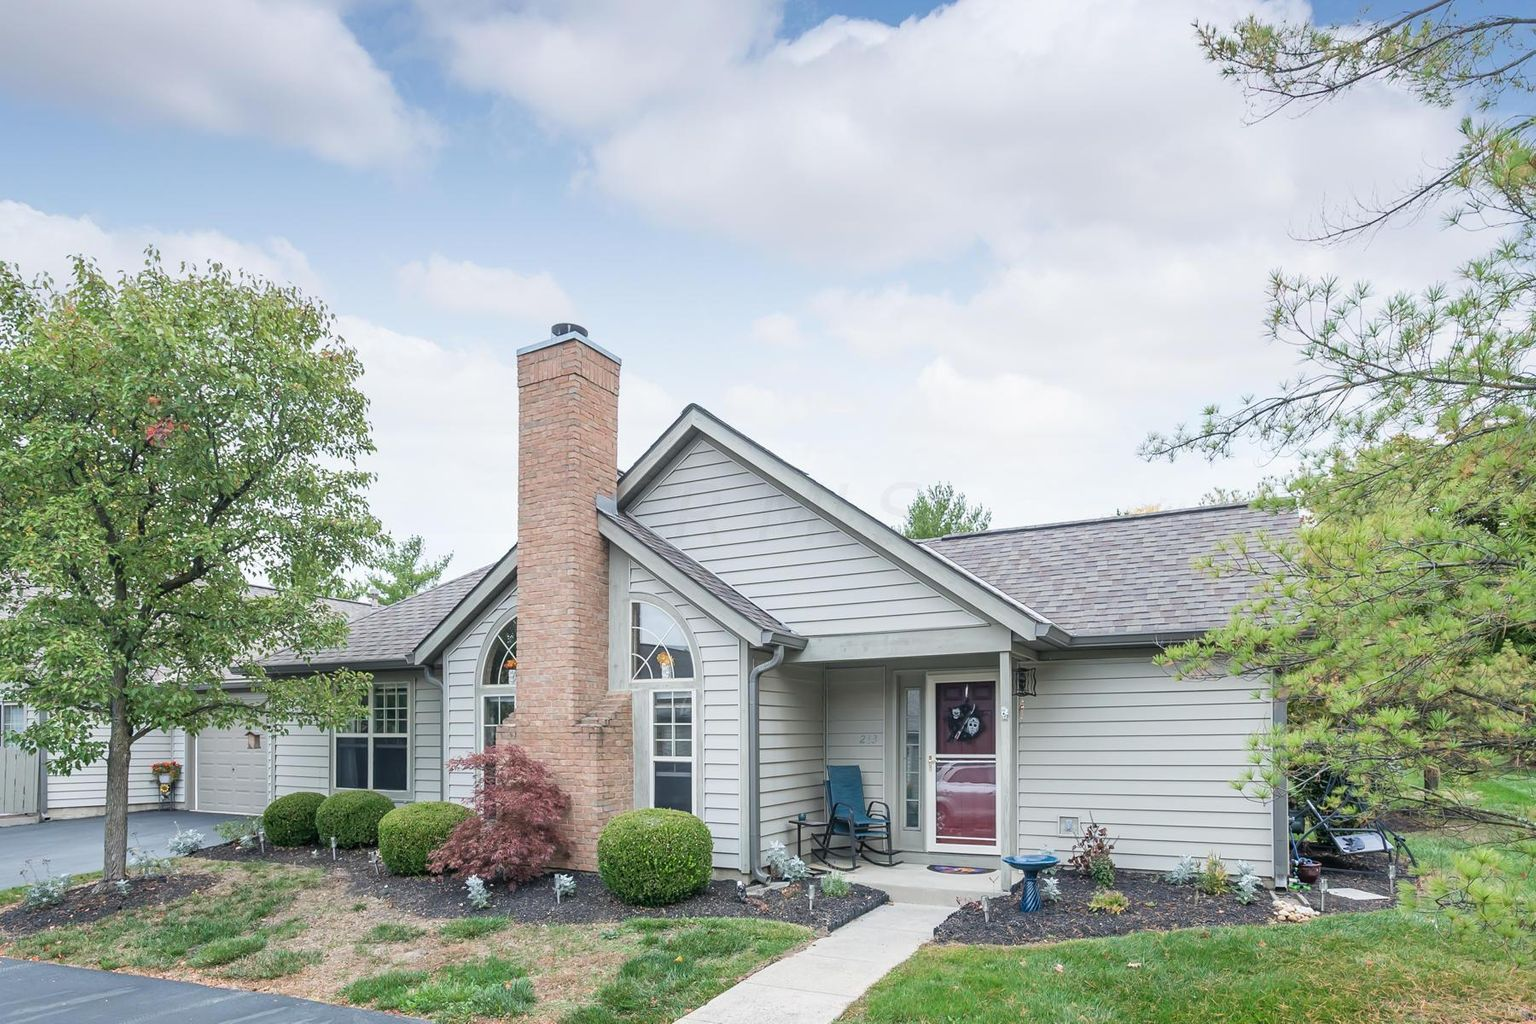 213 Deer Cross Ln, Powell, Ohio 43065, 2 Bedrooms Bedrooms, ,2 BathroomsBathrooms,House,Contingent,Deer Cross,1048